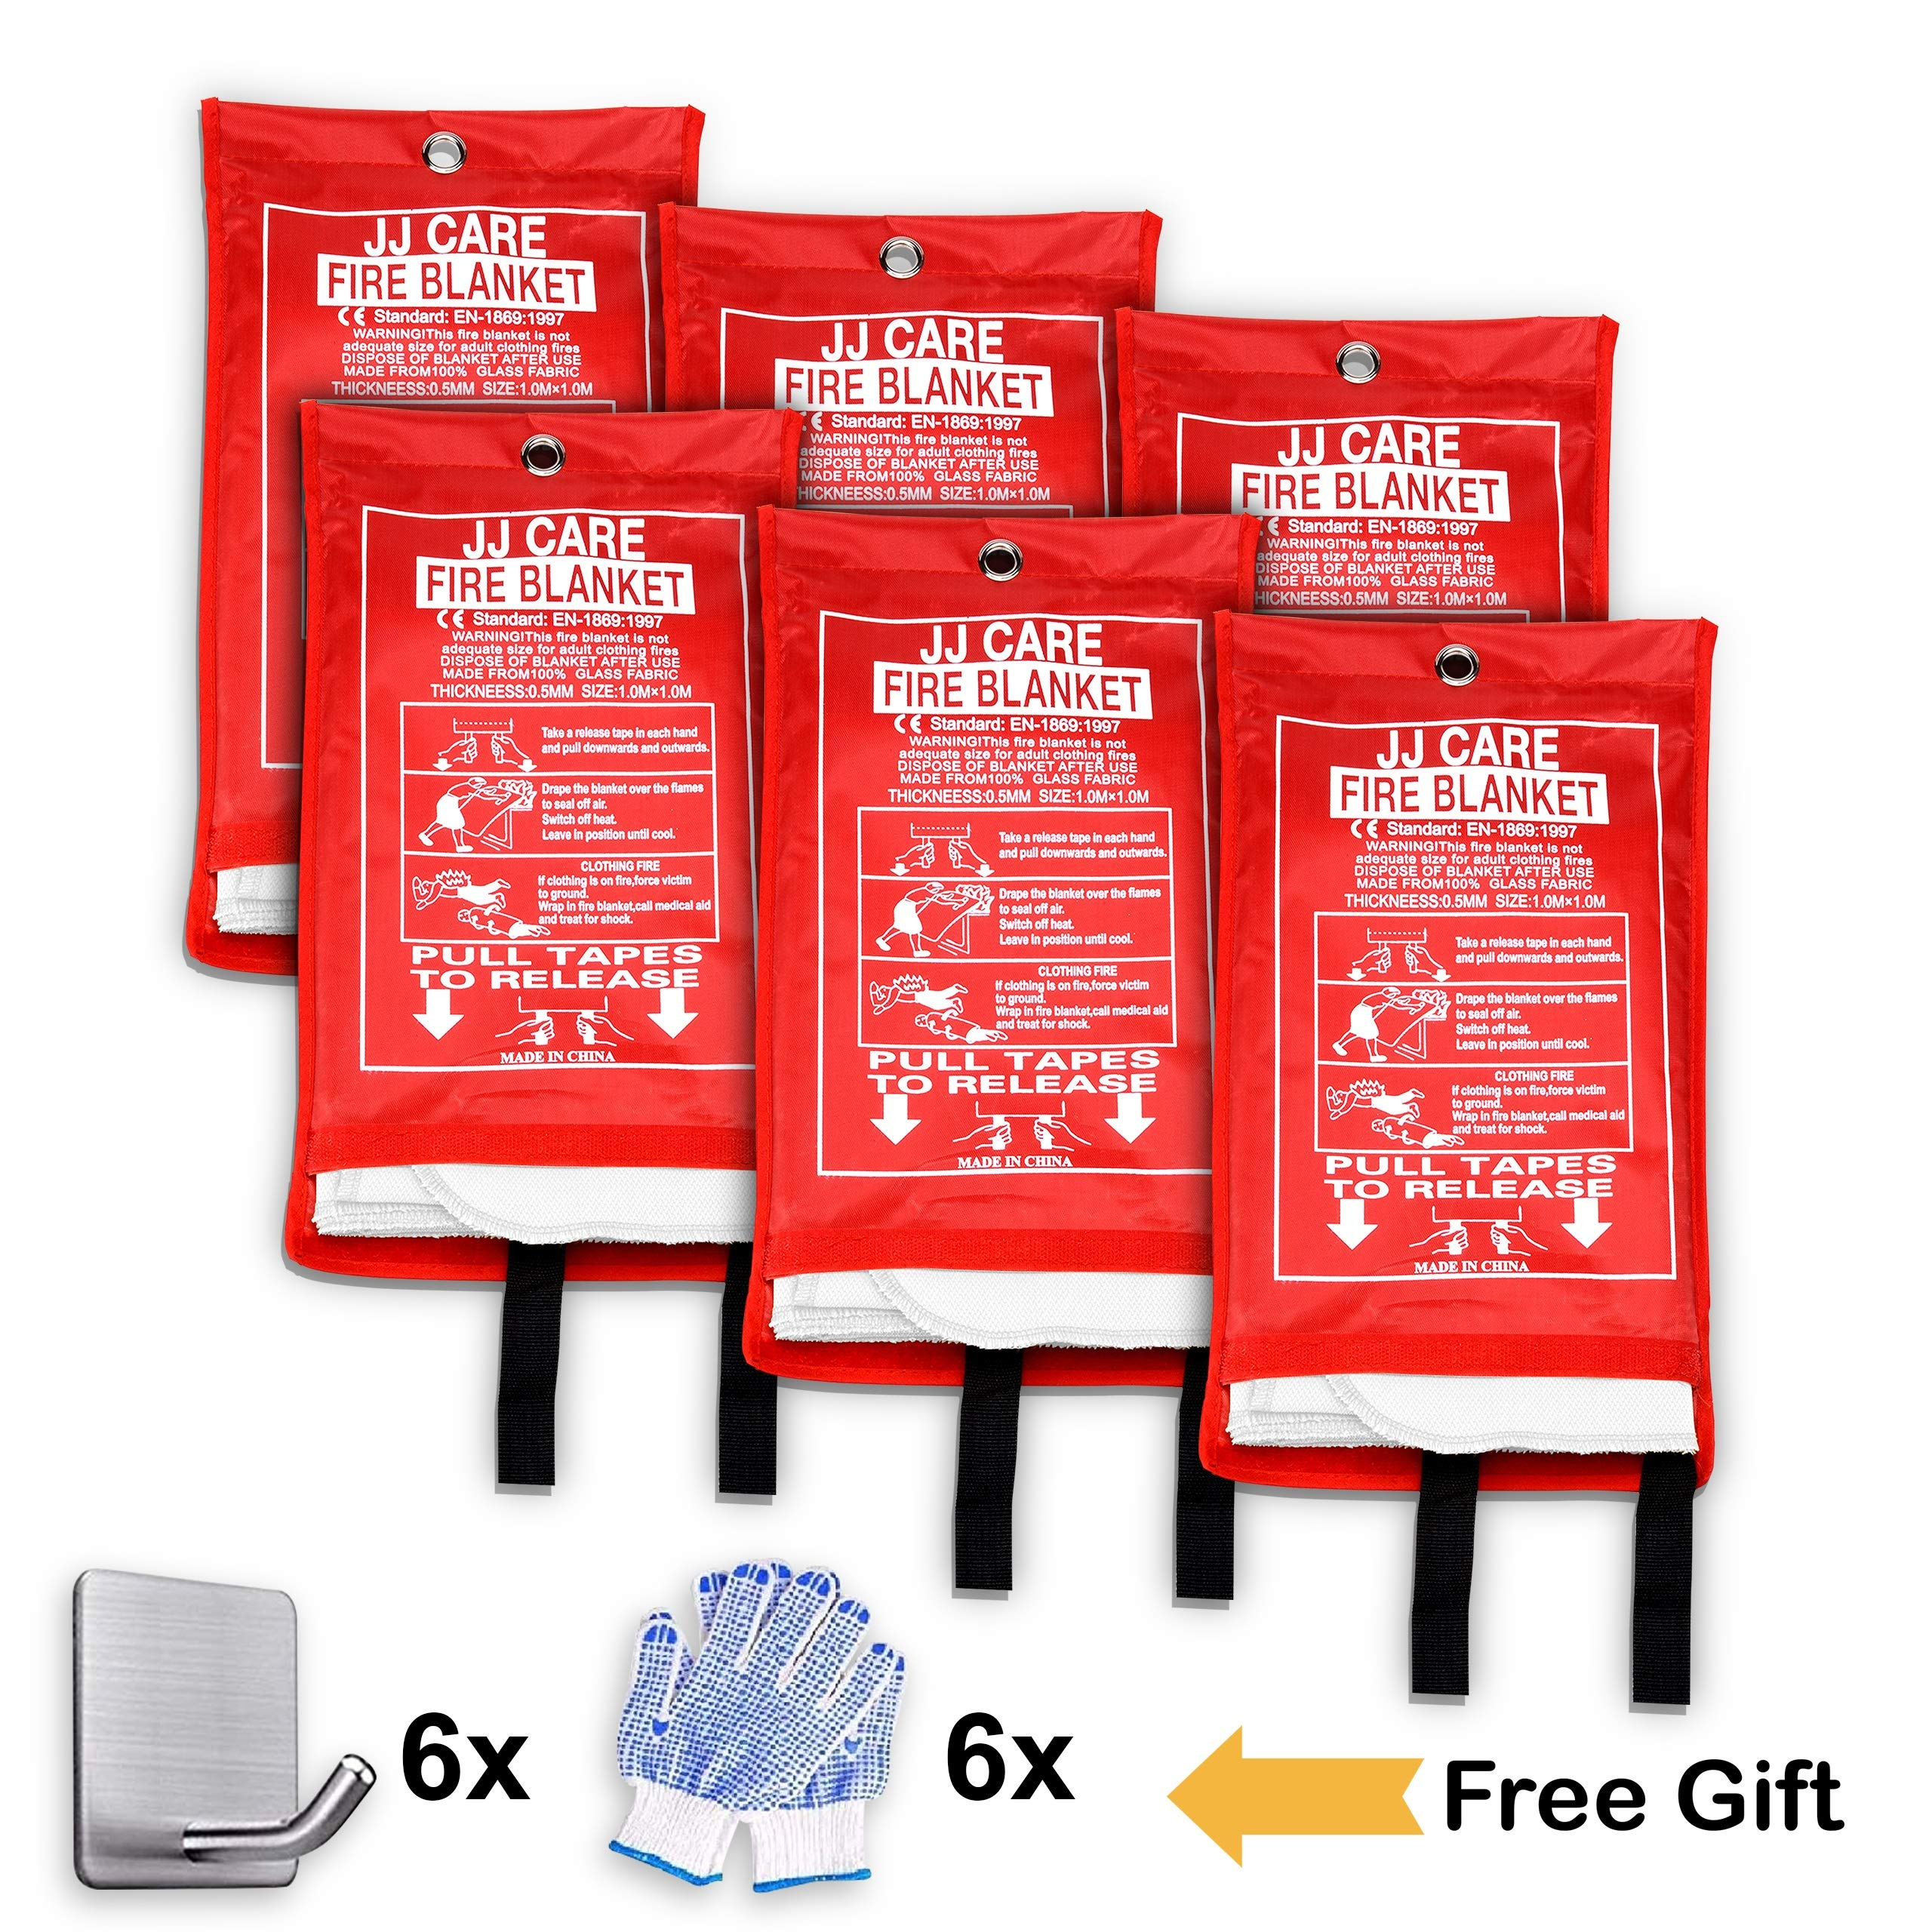 JJ CARE [Pack of 6] Fire Blanket Fire Suppression Blanket + Fire Protective Gloves + Hooks -Suitable for Camping, Grilling, Kitchen Safety, Car and Fireplace Retardant Blanket for Emergency by JJ CARE